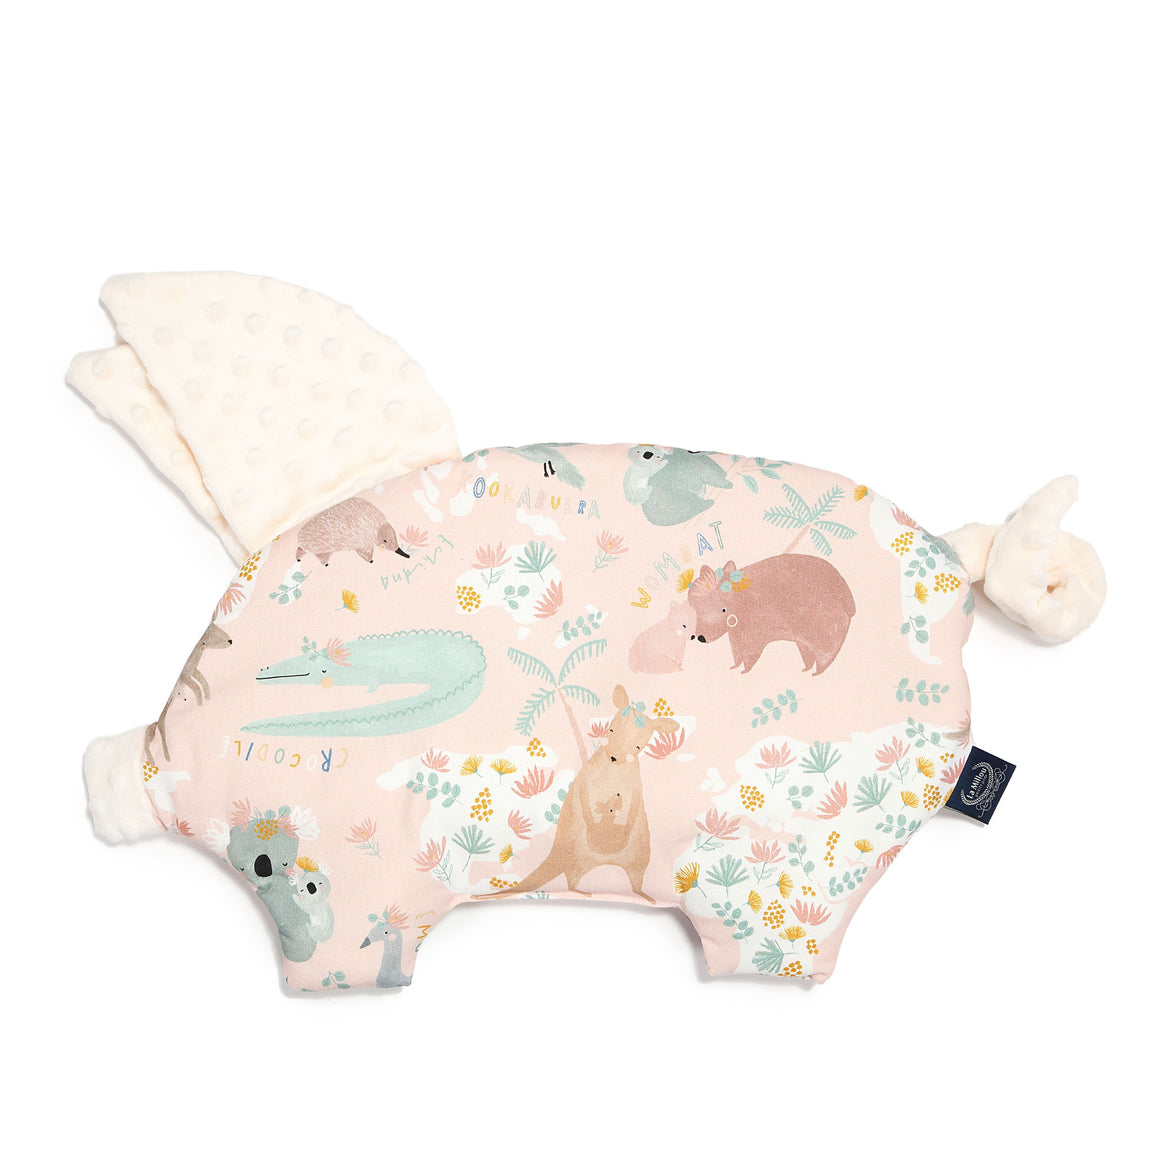 SLEEPY PIG ensityyny - Dundee & Friends Pink | Ecru